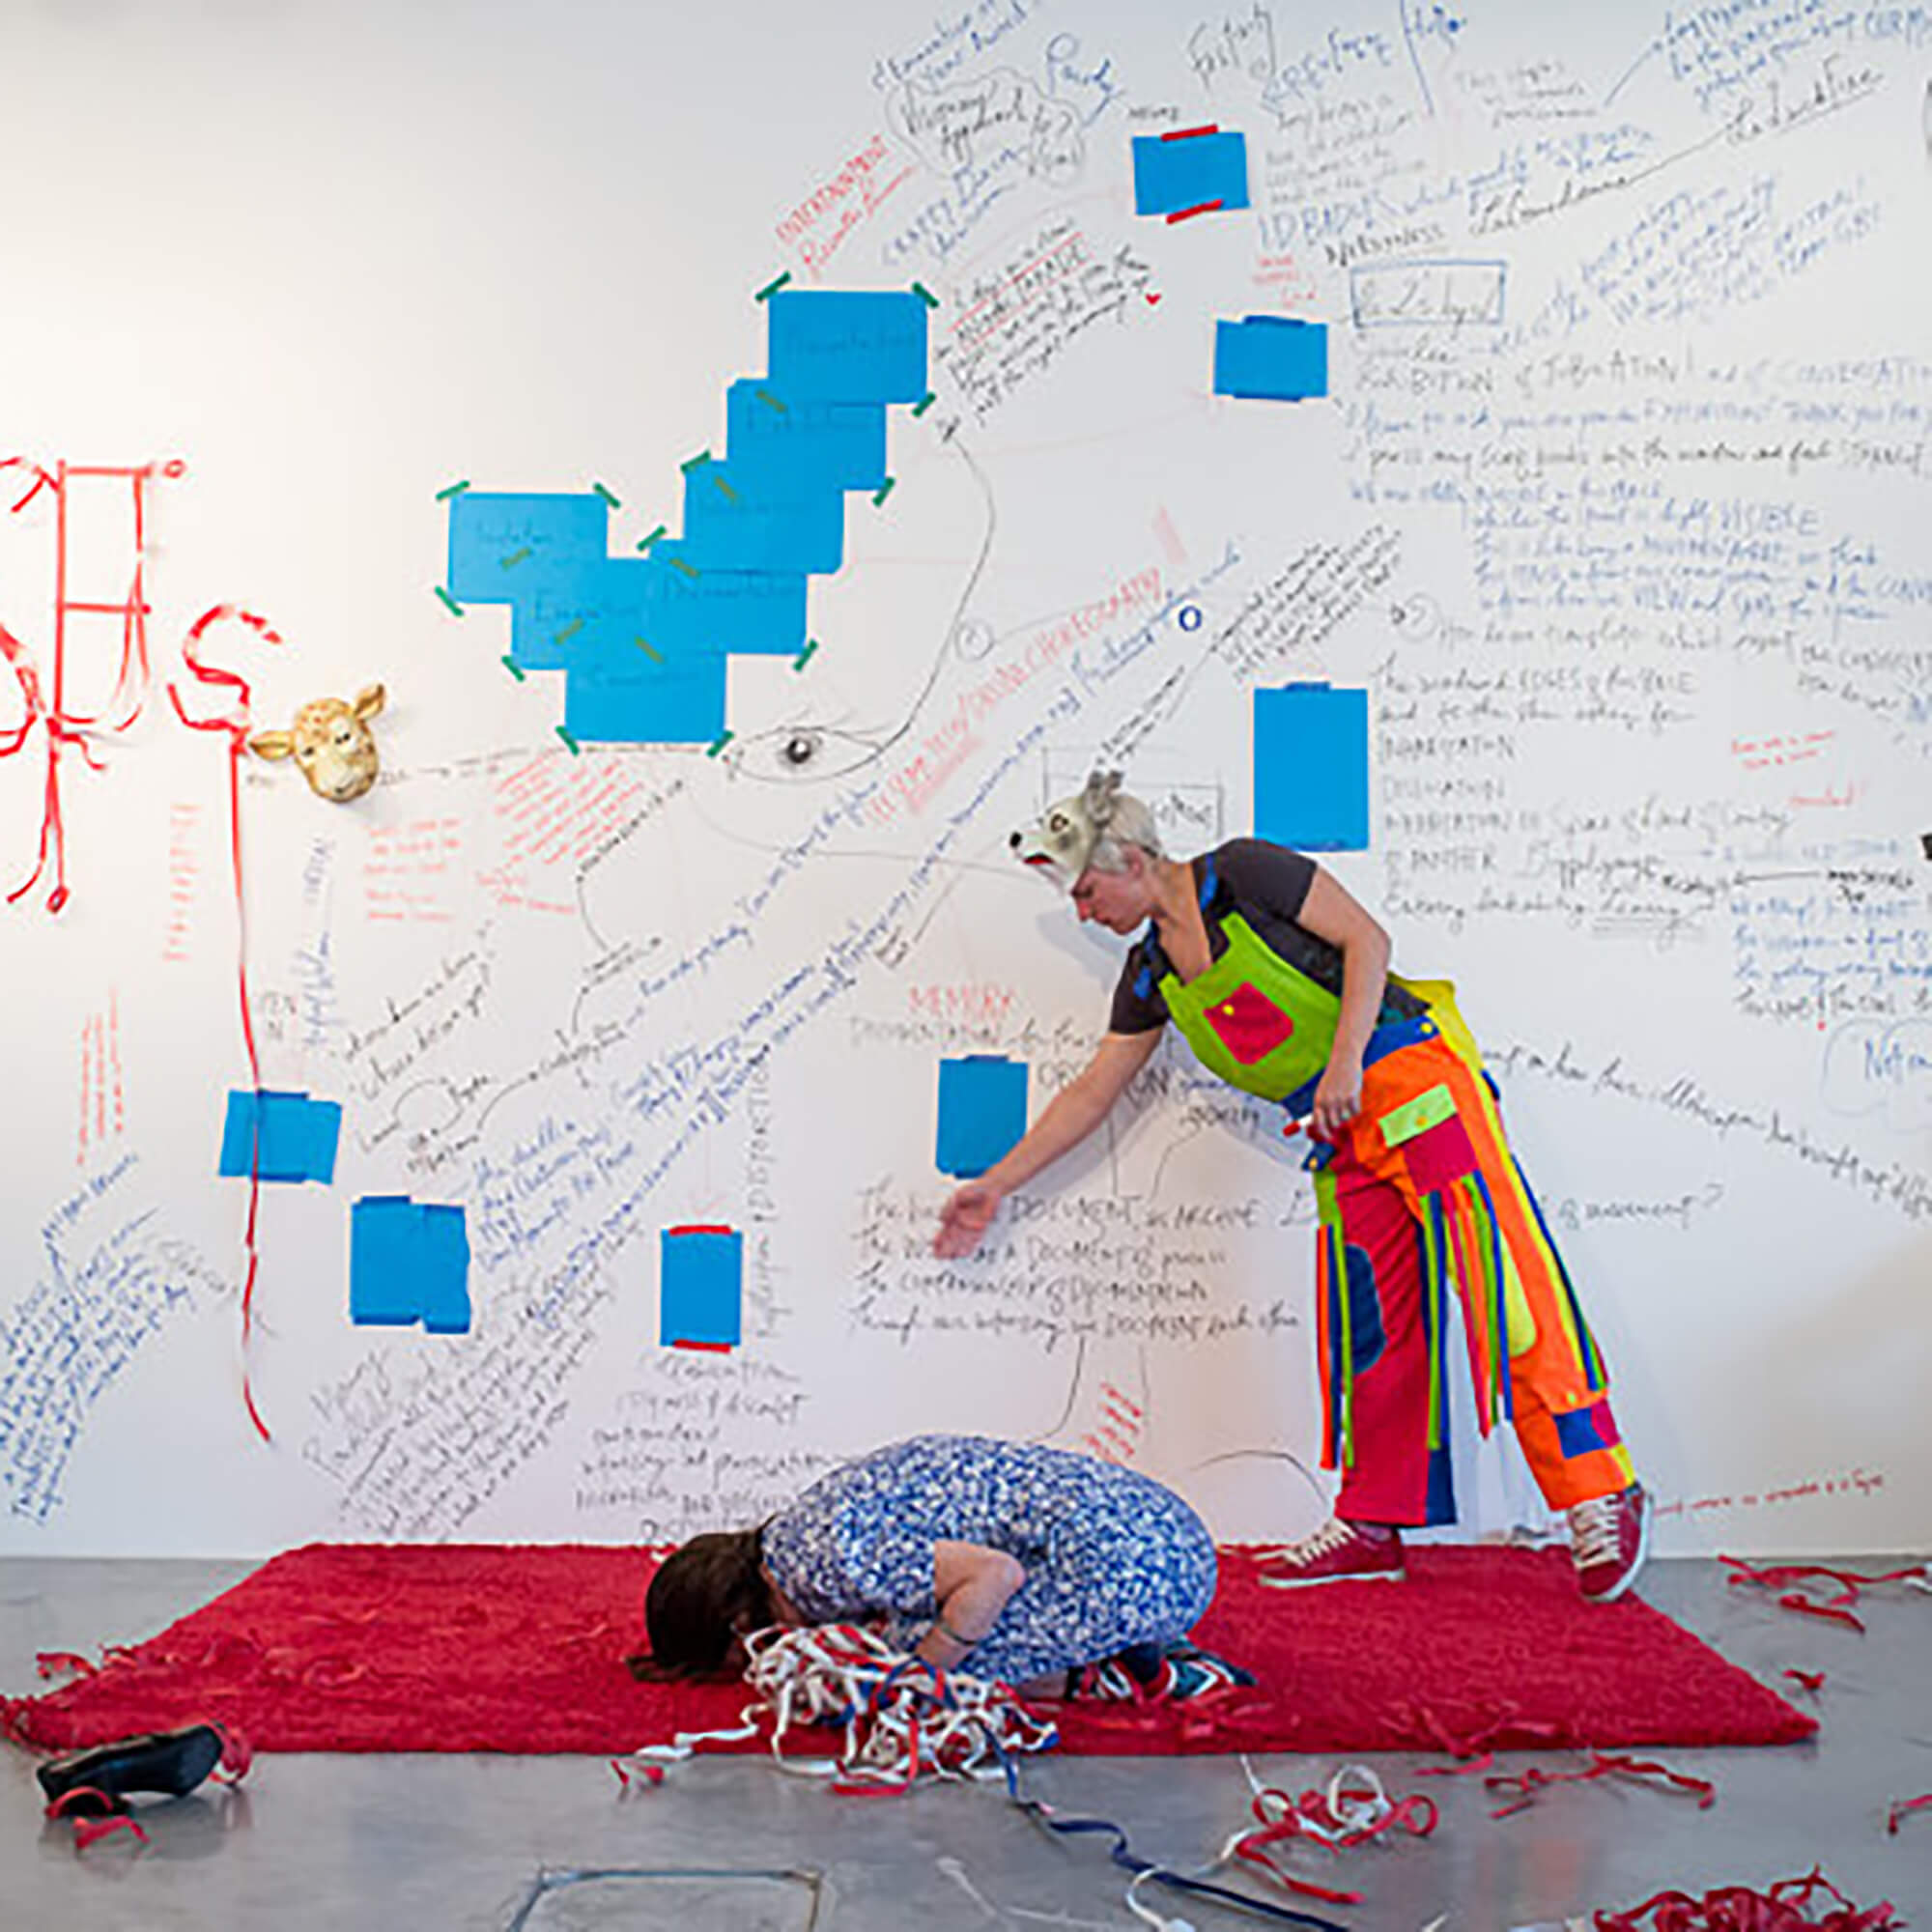 'Amiga' Performance. Person crouching on the floor on a red mat. Another person stands nearby pointing to a wall containing written messages and drawings.